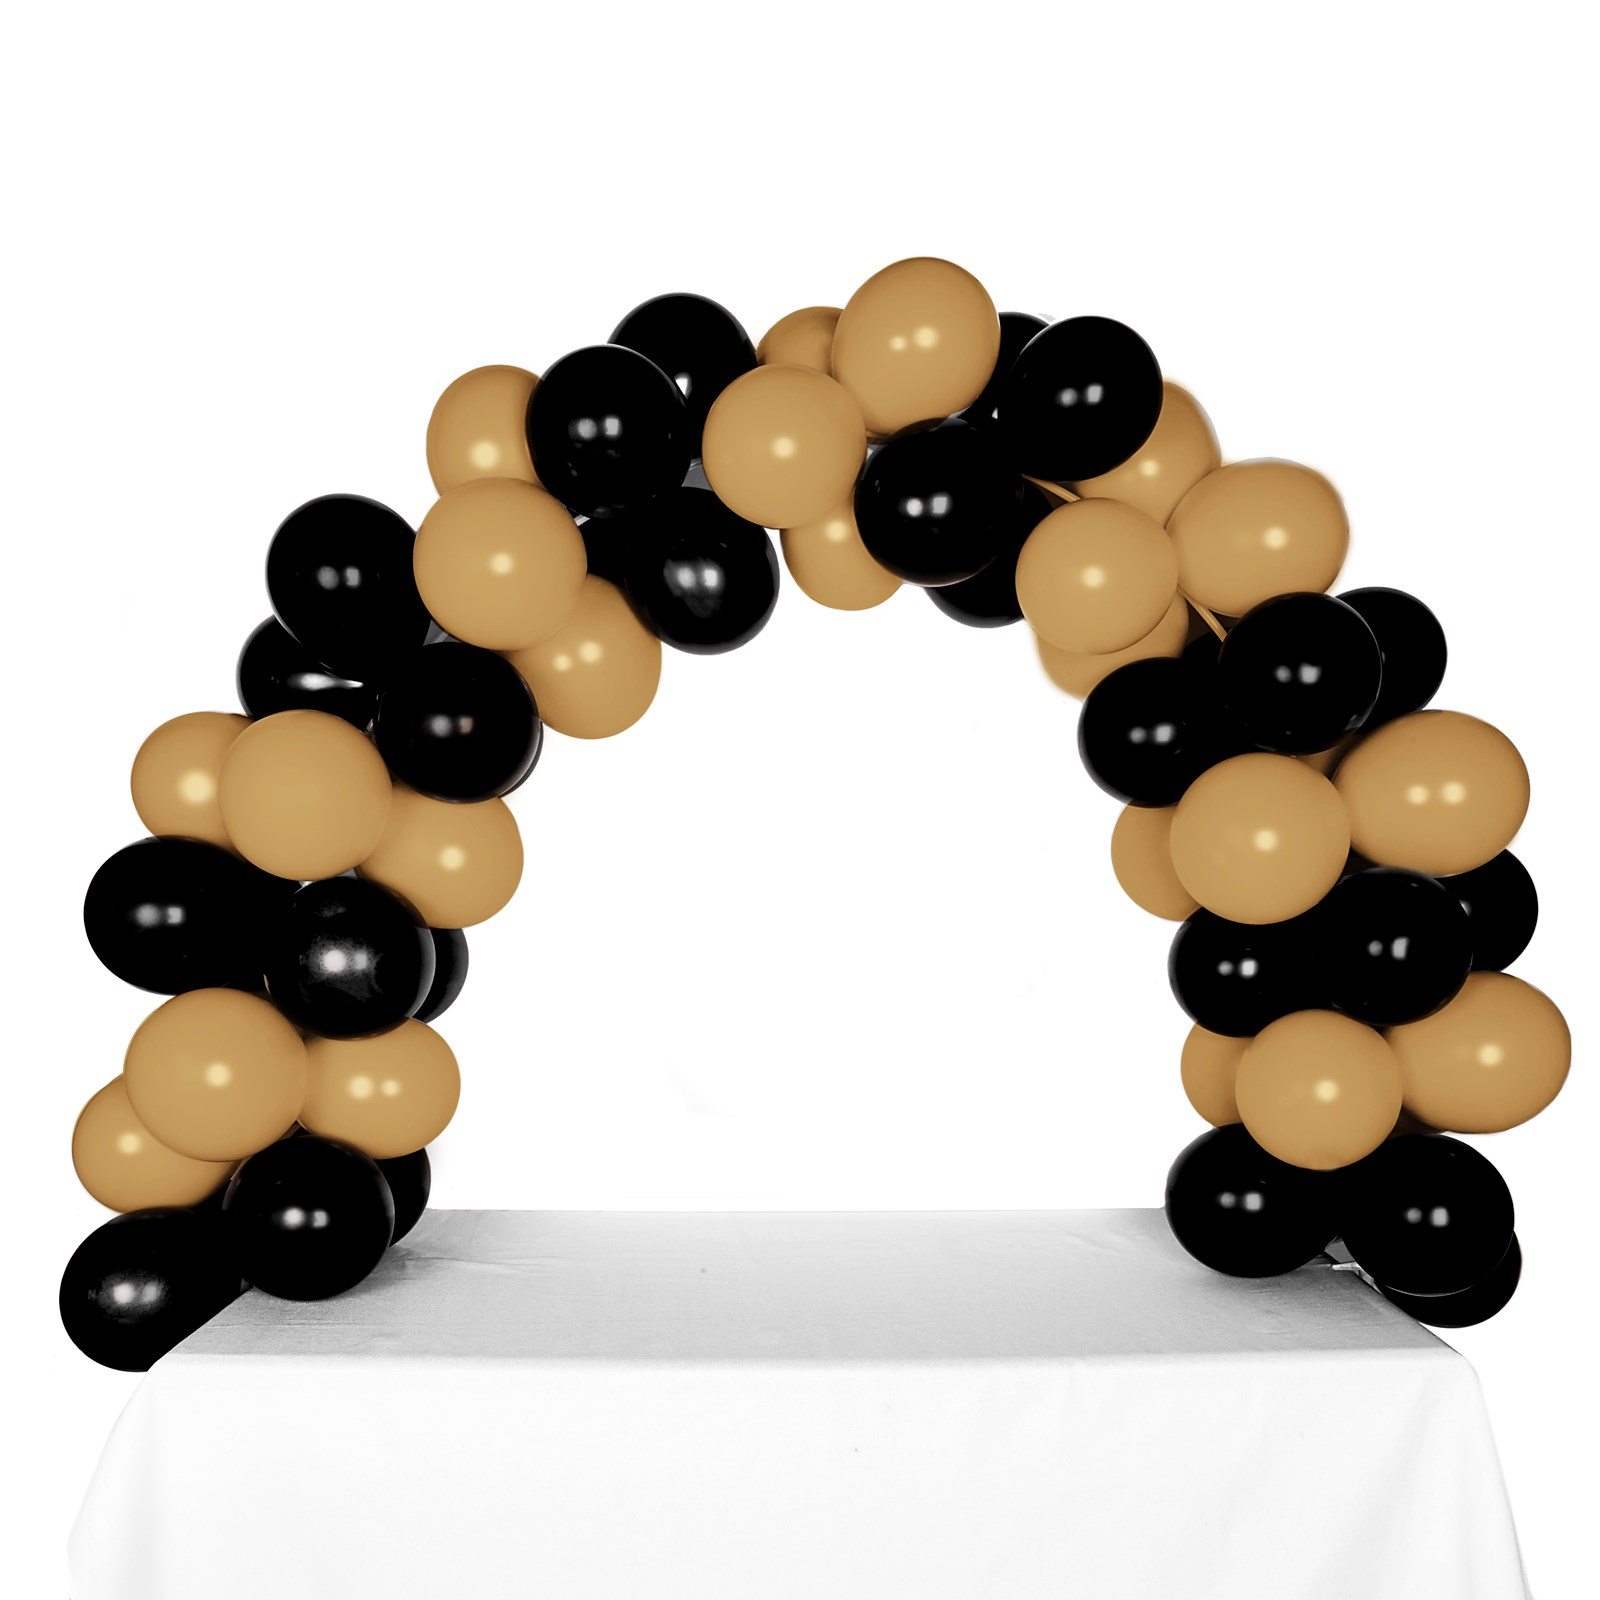 Where Can You Buy Balloon Arch Kits In Delaware - Celebration tabletop balloon arch black